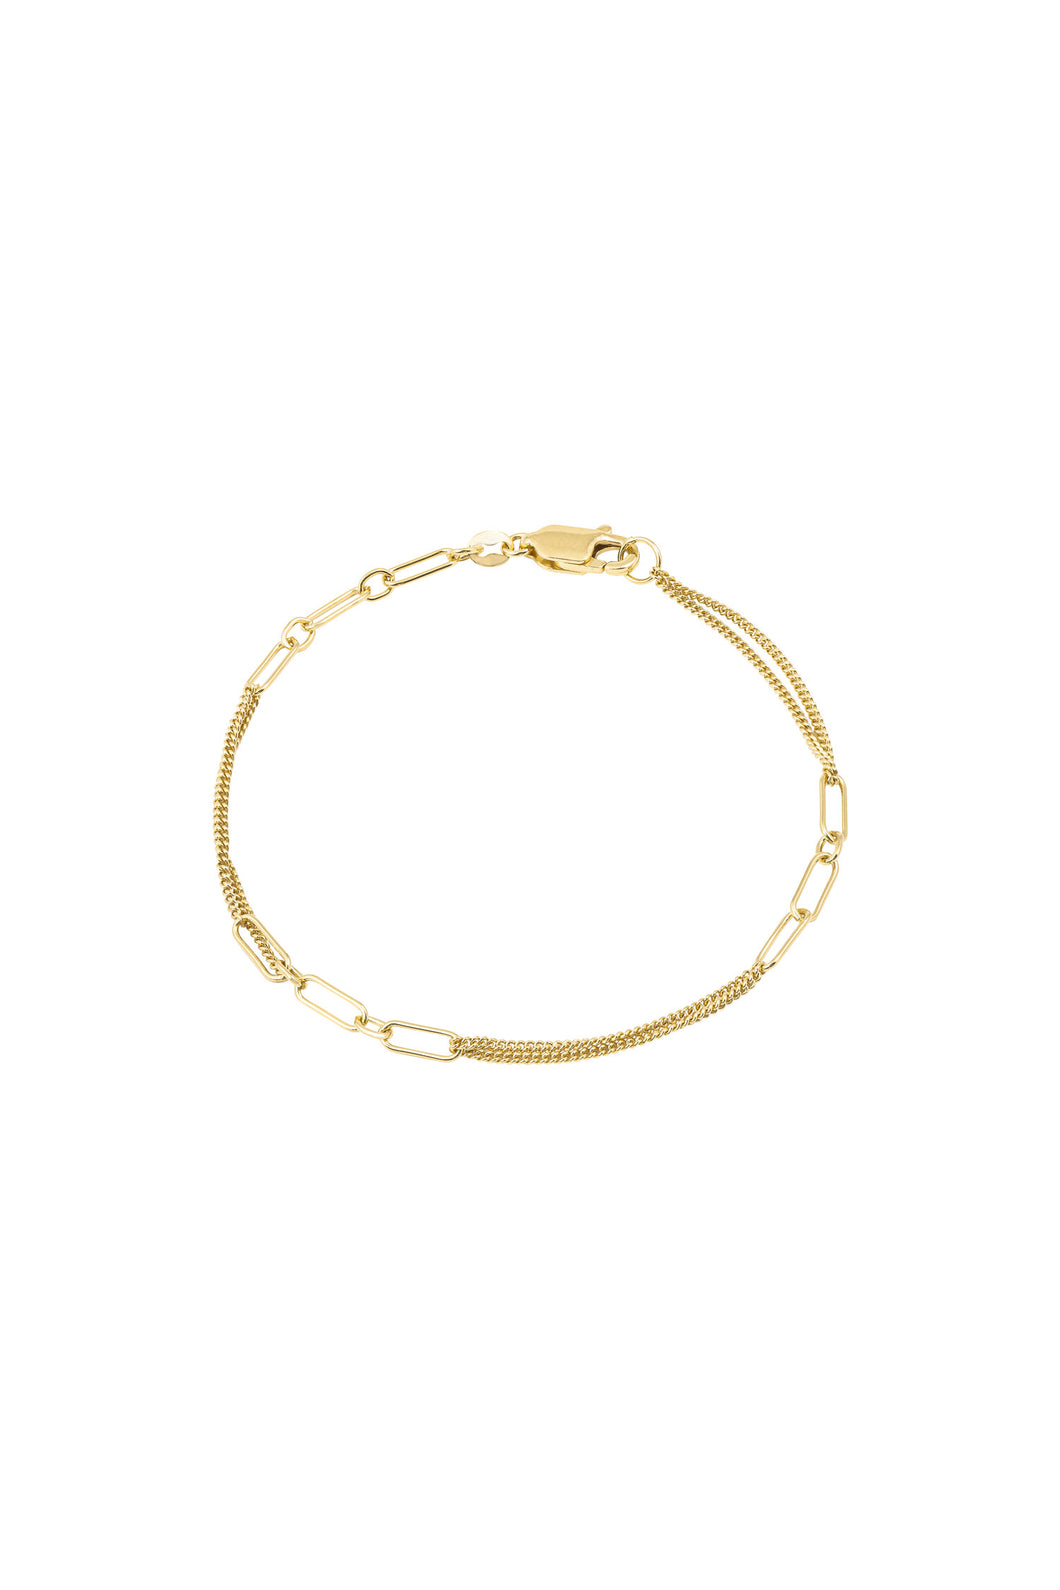 Armband - Chain JA1 (Gold plated silver) - Illinois Gent